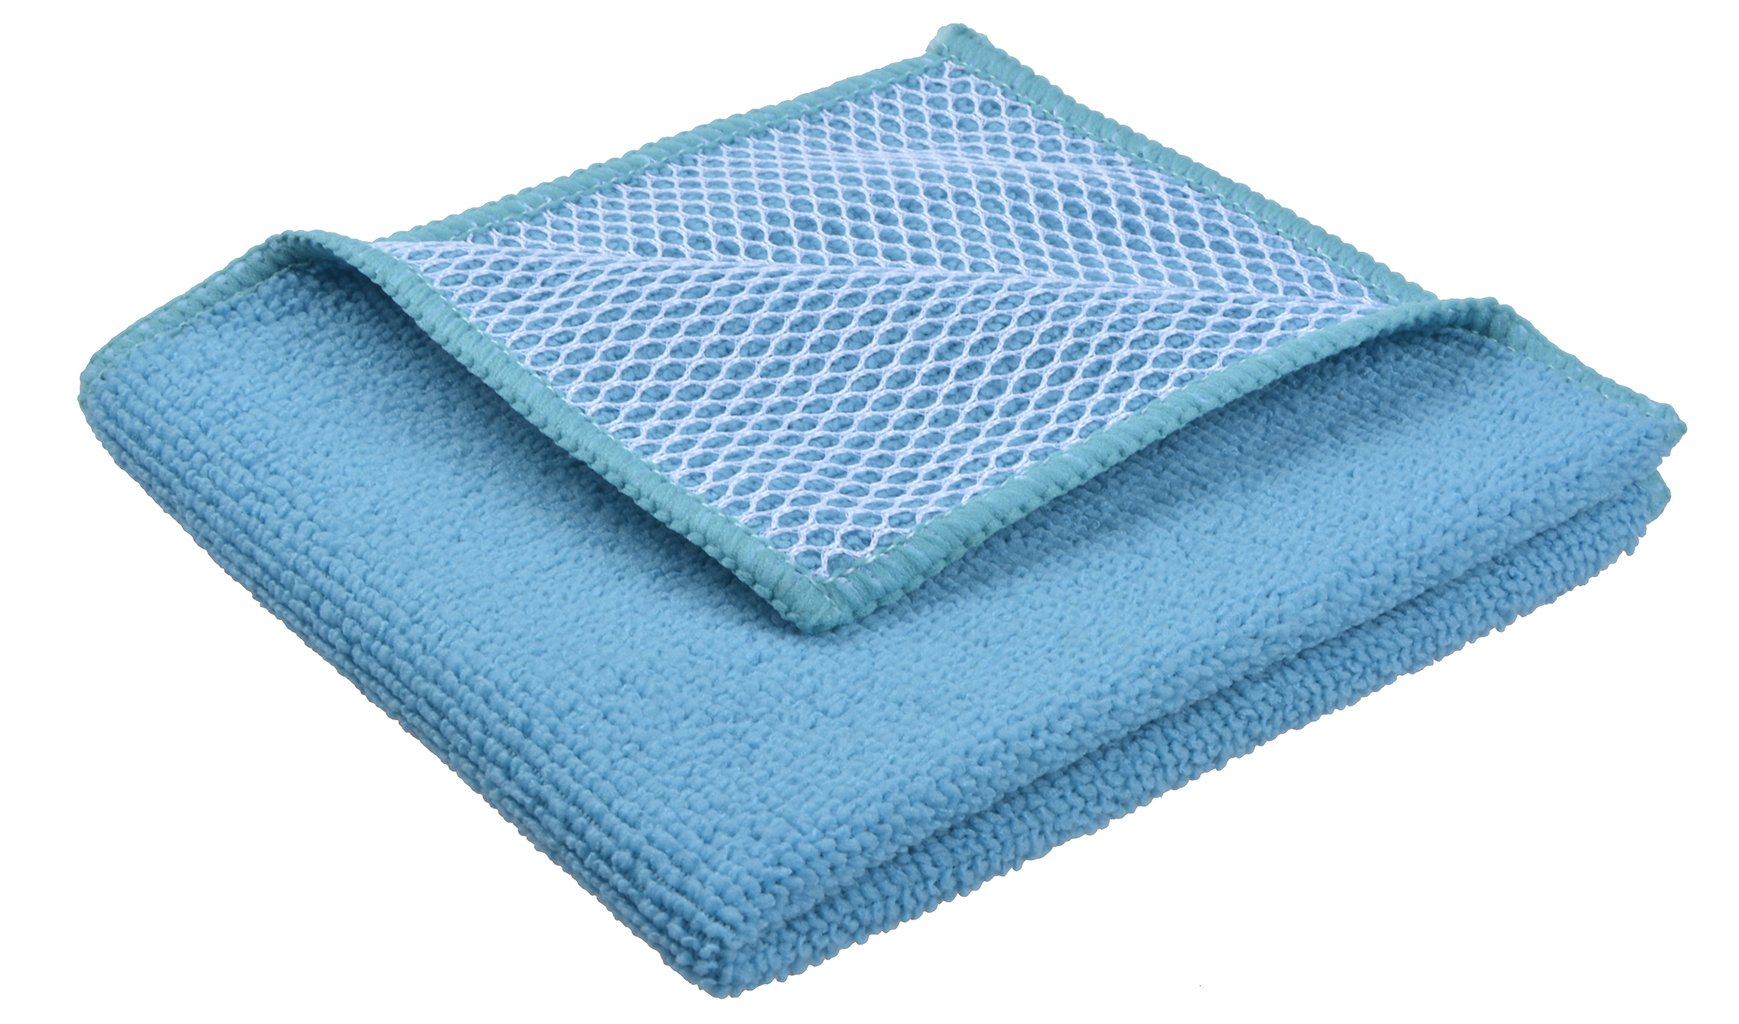 f6a4c9a66a376 Sinland 5 color assorted Microfiber Dish Cloth Best Kitchen Cloths Cleaning  Cloths With Poly Scour Side 12